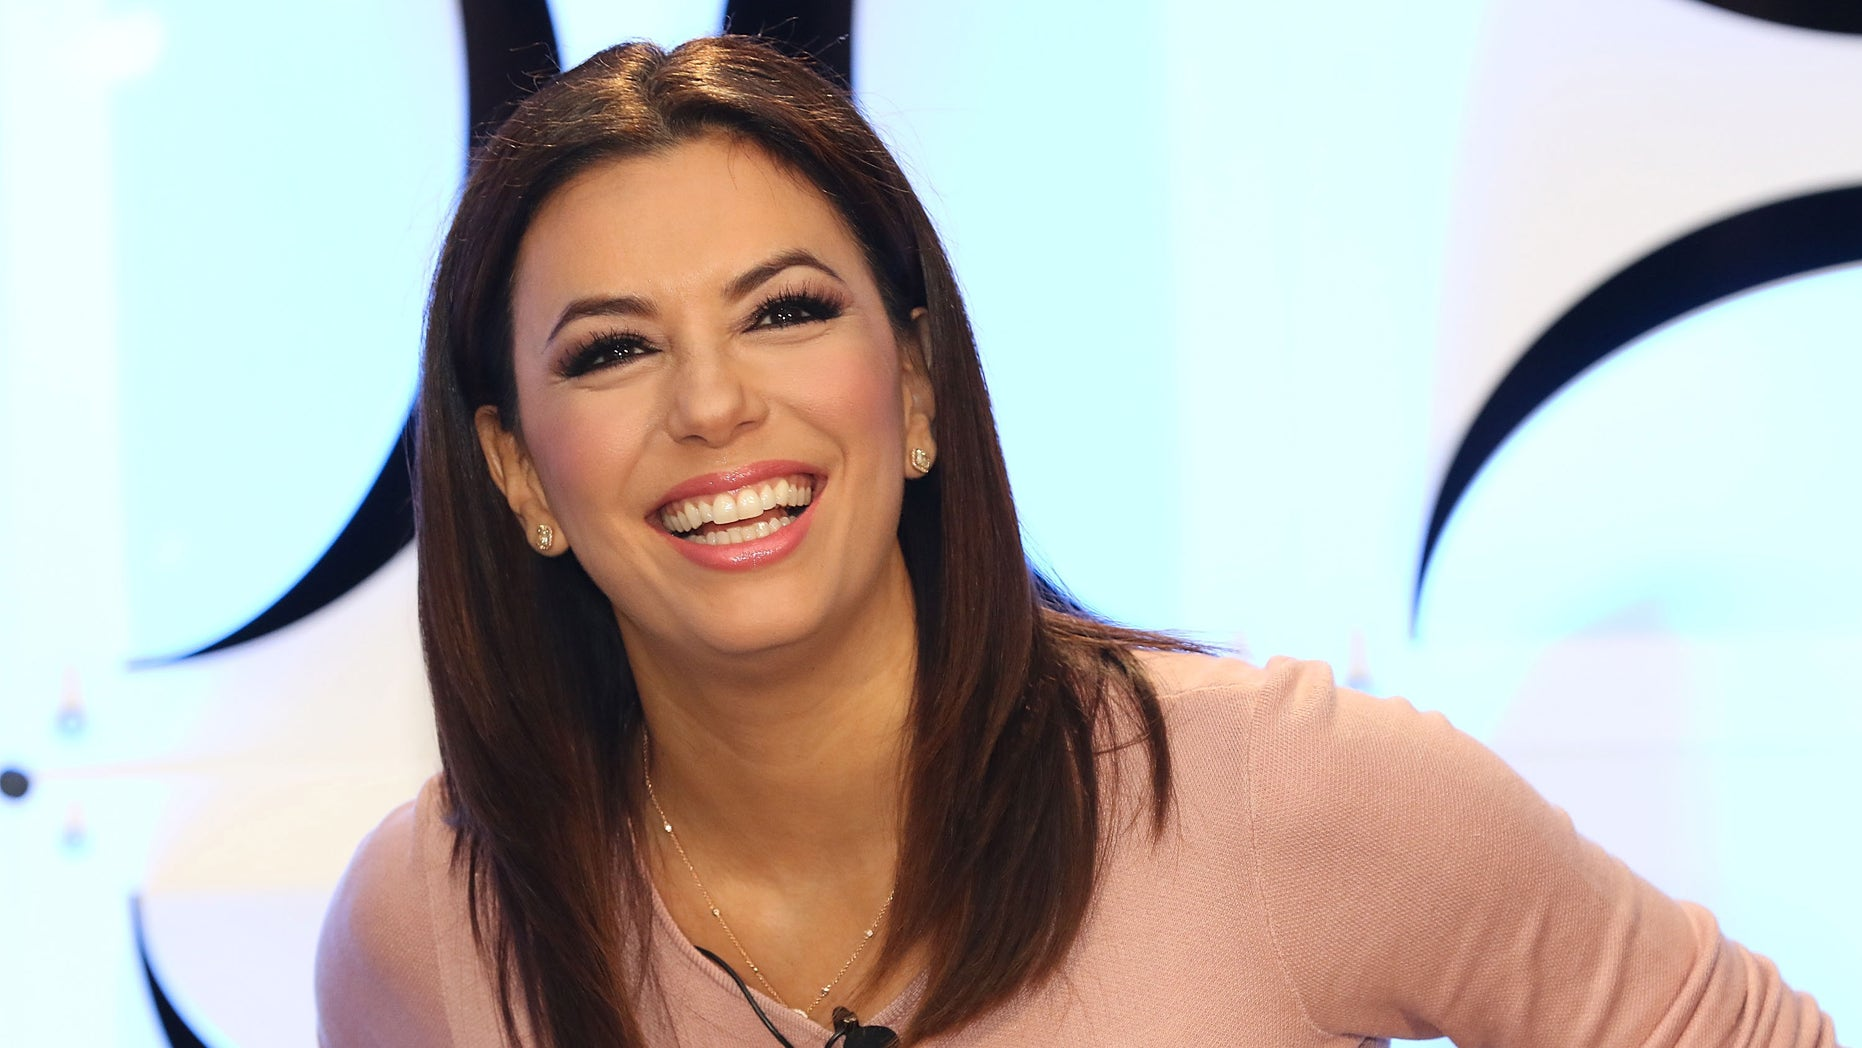 MIAMI BEACH, FL - JANUARY 22: Eva Longoria attends Global Navigators: Sharpening the Focus: How U.S. Networks Are Engaging the Hispanic Audience on day 3 of NATPE 2015 at Fontainebleau Miami Beach on January 22, 2015 in Miami Beach, Florida. (Photo by Aaron Davidson/Getty Images)